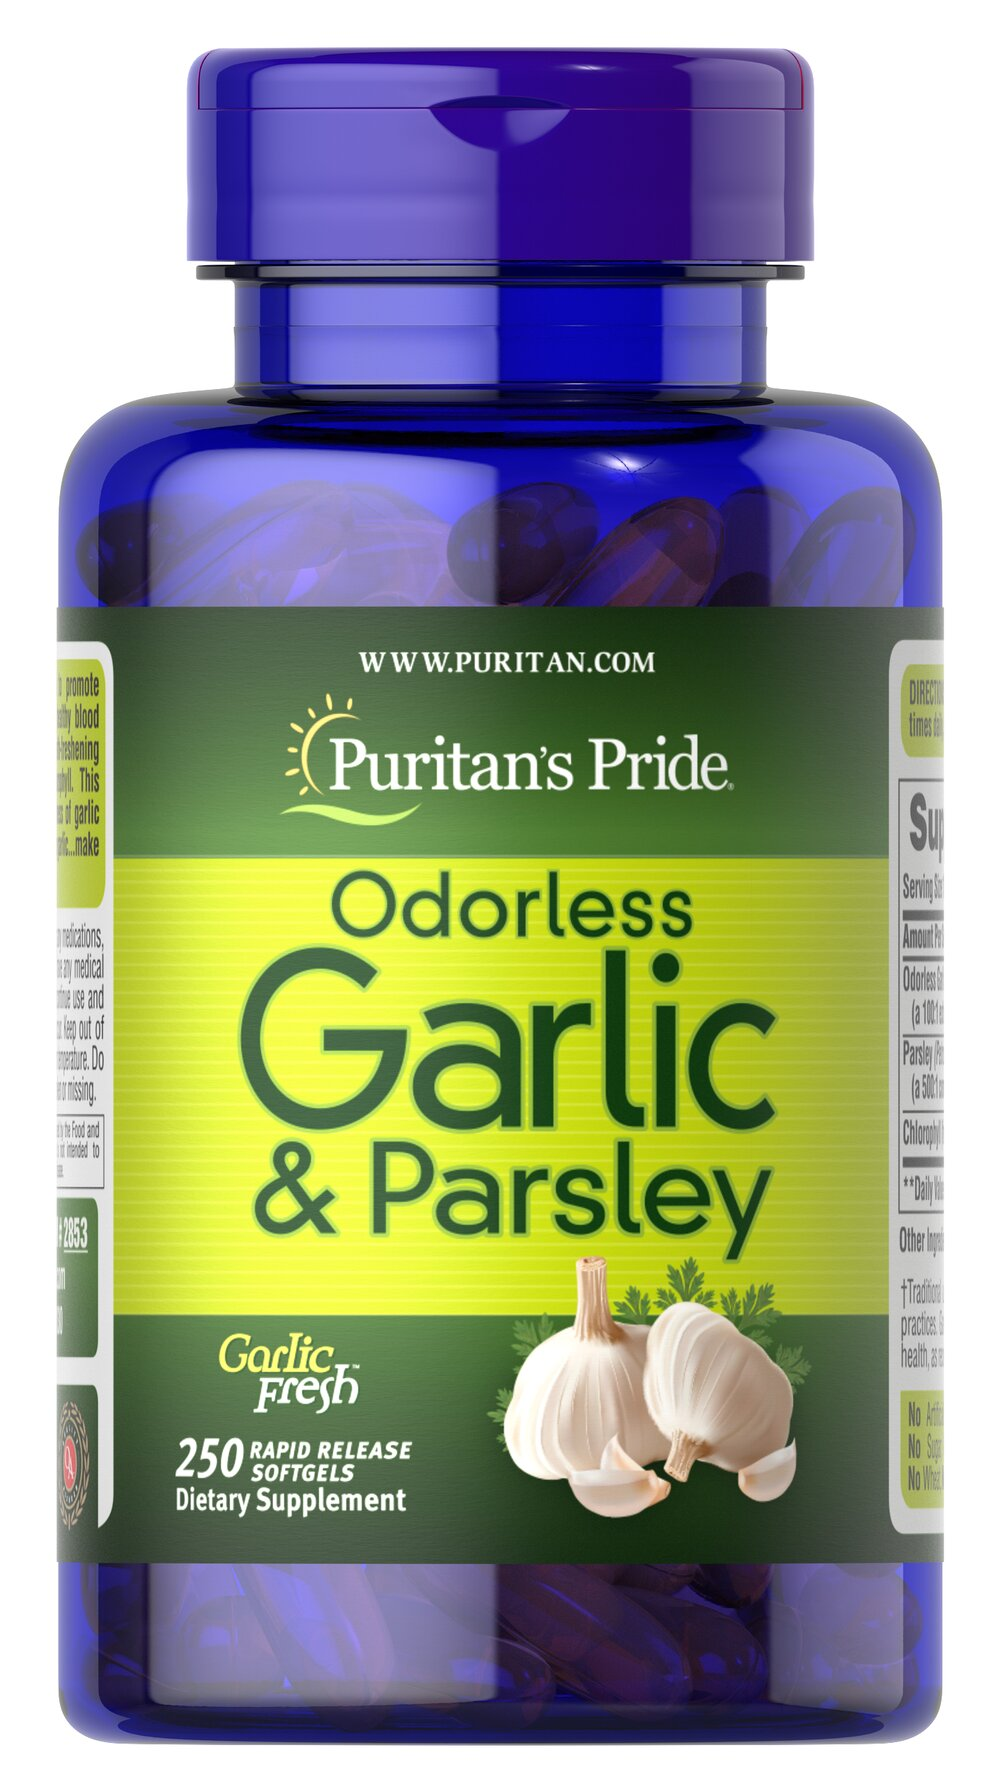 Odorless Garlic & Parsley 500 mg / 100 mg <p>Promotes heart and cardiovascular function**</p><p> Provides cholesterol support**</p> <p>Possesses beneficial antioxidant properties**</p><p>Traditionally used for respiratory health**</p><p>Contains breath-freshening Parsley and the plant nutrient Chlorophyll</p><p>These easy-to-swallow softgels are a great way to reap the natural benefits that Garlic has to offer without experien